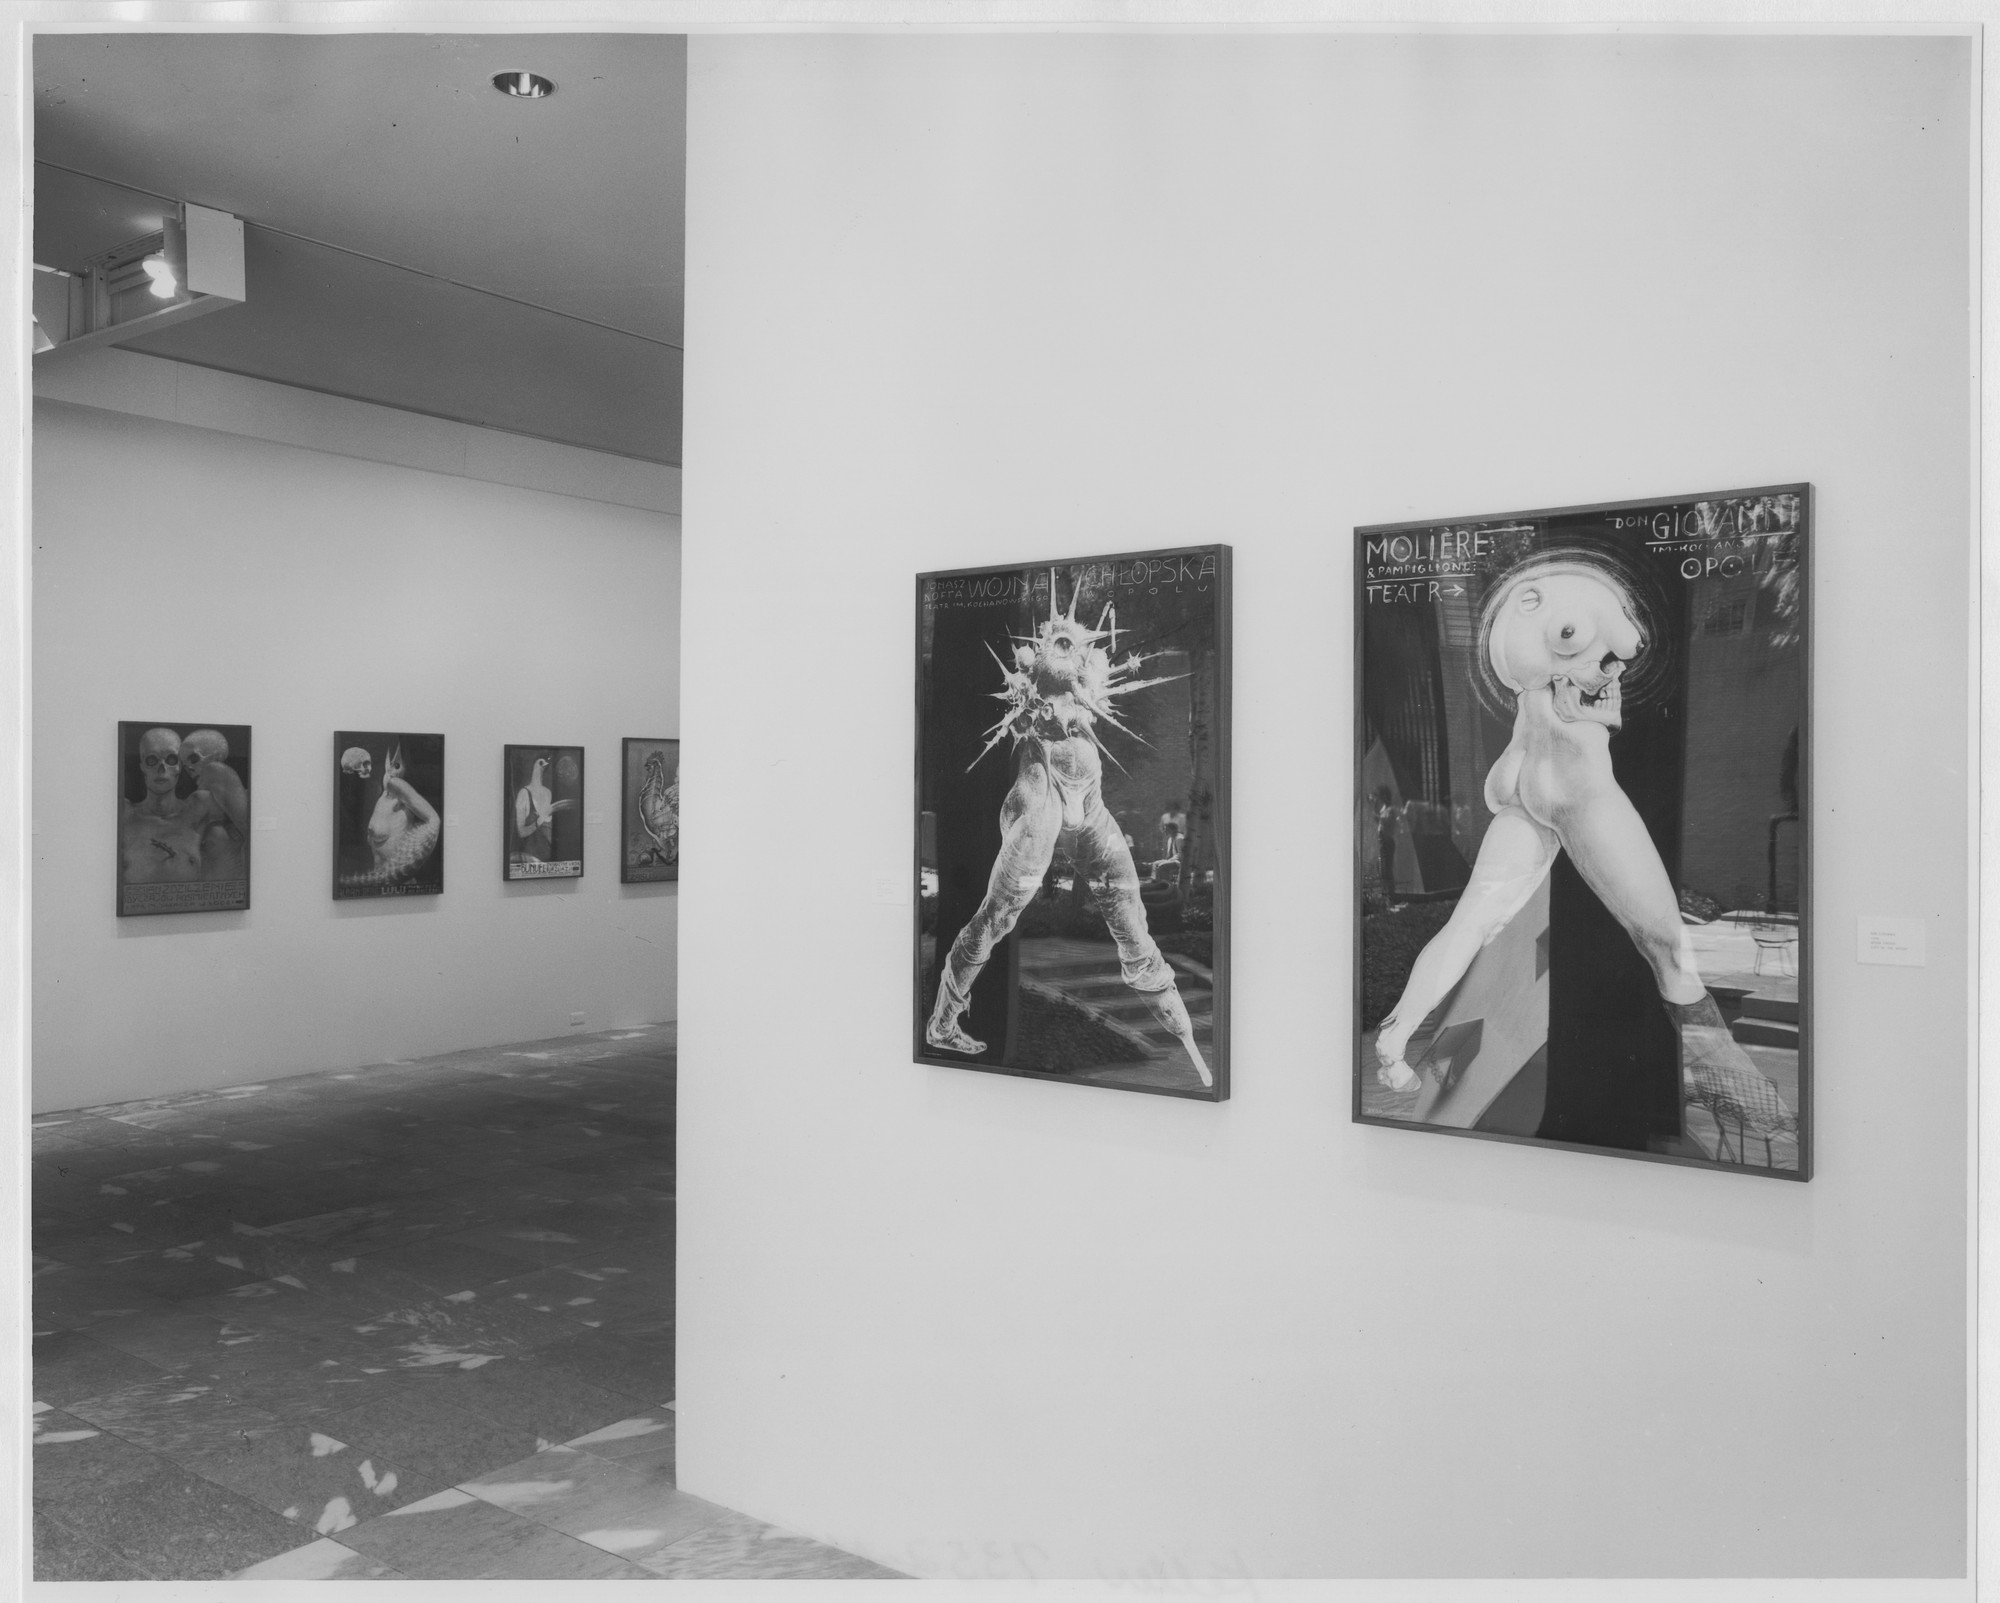 "Installation view of the exhibition, ""Posters by Starowieyski"" April 11, 1985–June 4, 1985. Photographic Archive. The Museum of Modern Art Archives, New York. IN1396.1. Photograph by Mali Olatunji."